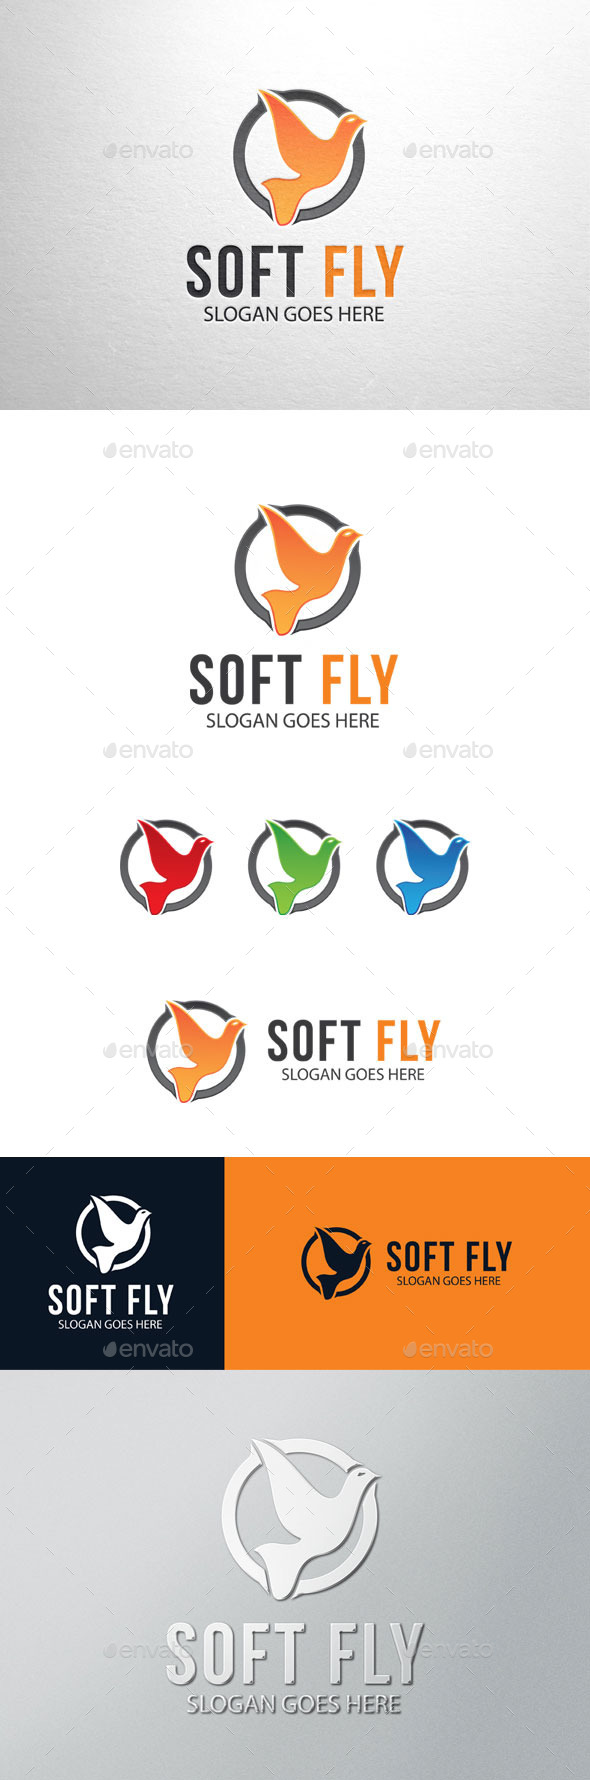 GraphicRiver Soft Fly Bird Logo 11184485